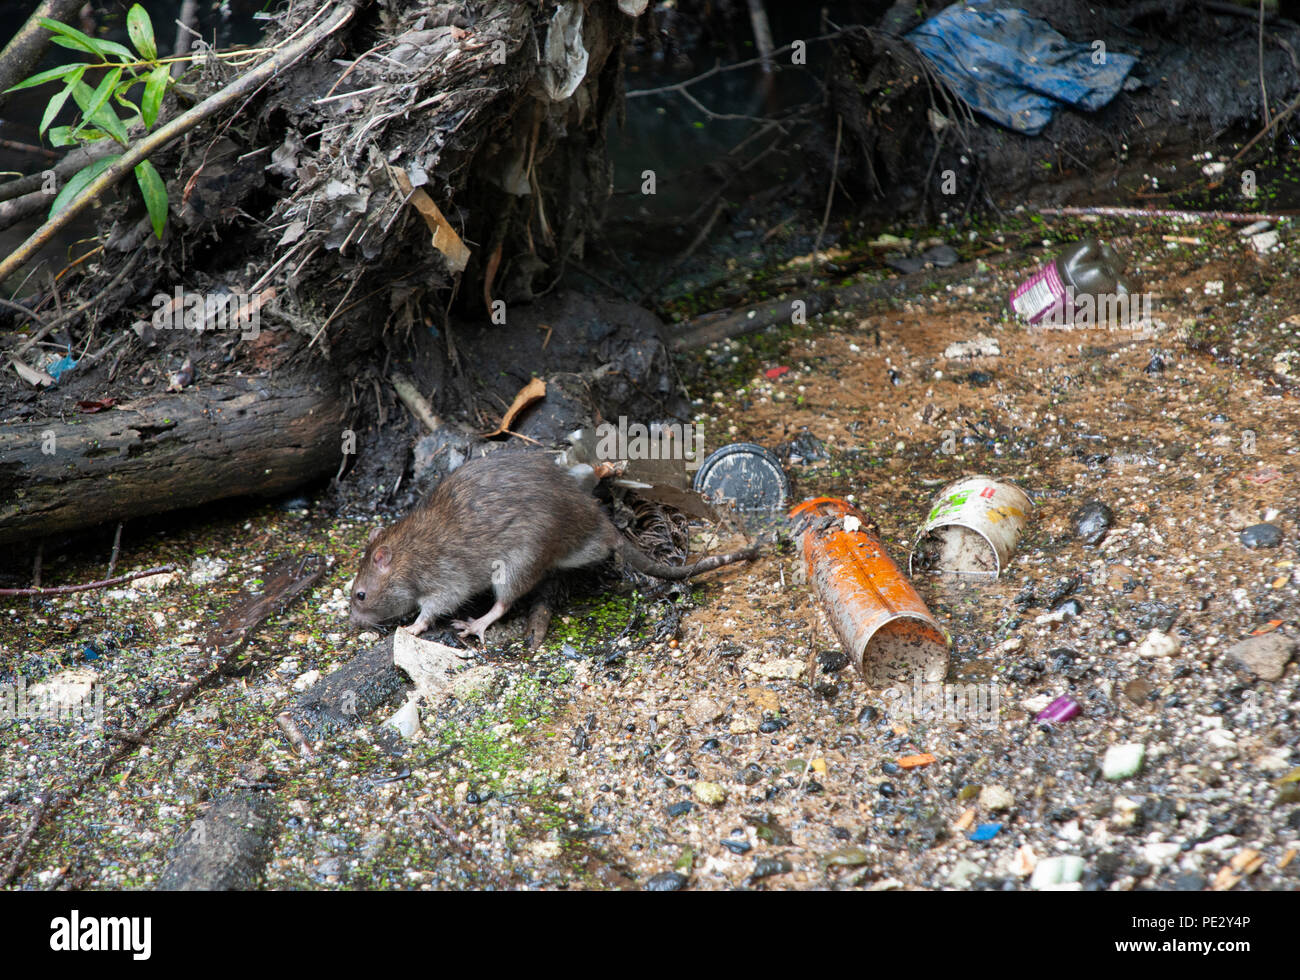 Brown Rat, (Rattus norvegicus), scavenging food amongst rubbish, River Brent , near Welsh Harp Reservoir, Brent, London, United Kingdom - Stock Image